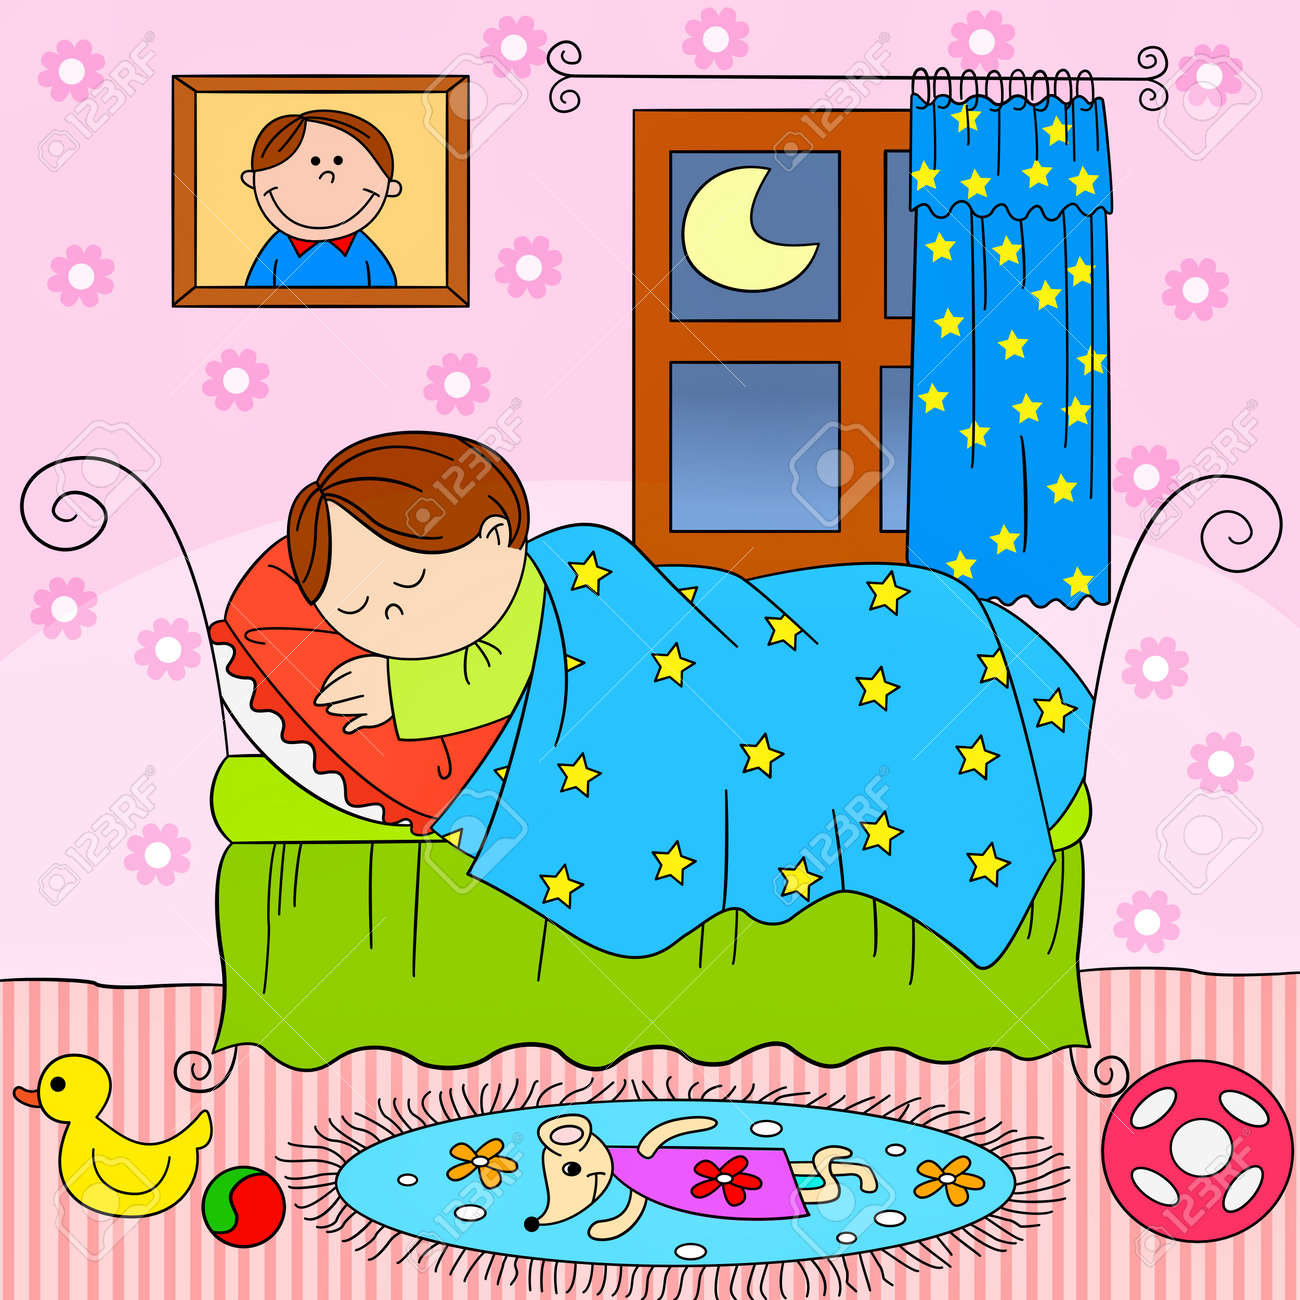 Bedroom clipart clipart kid - Child Sleeping In Bed